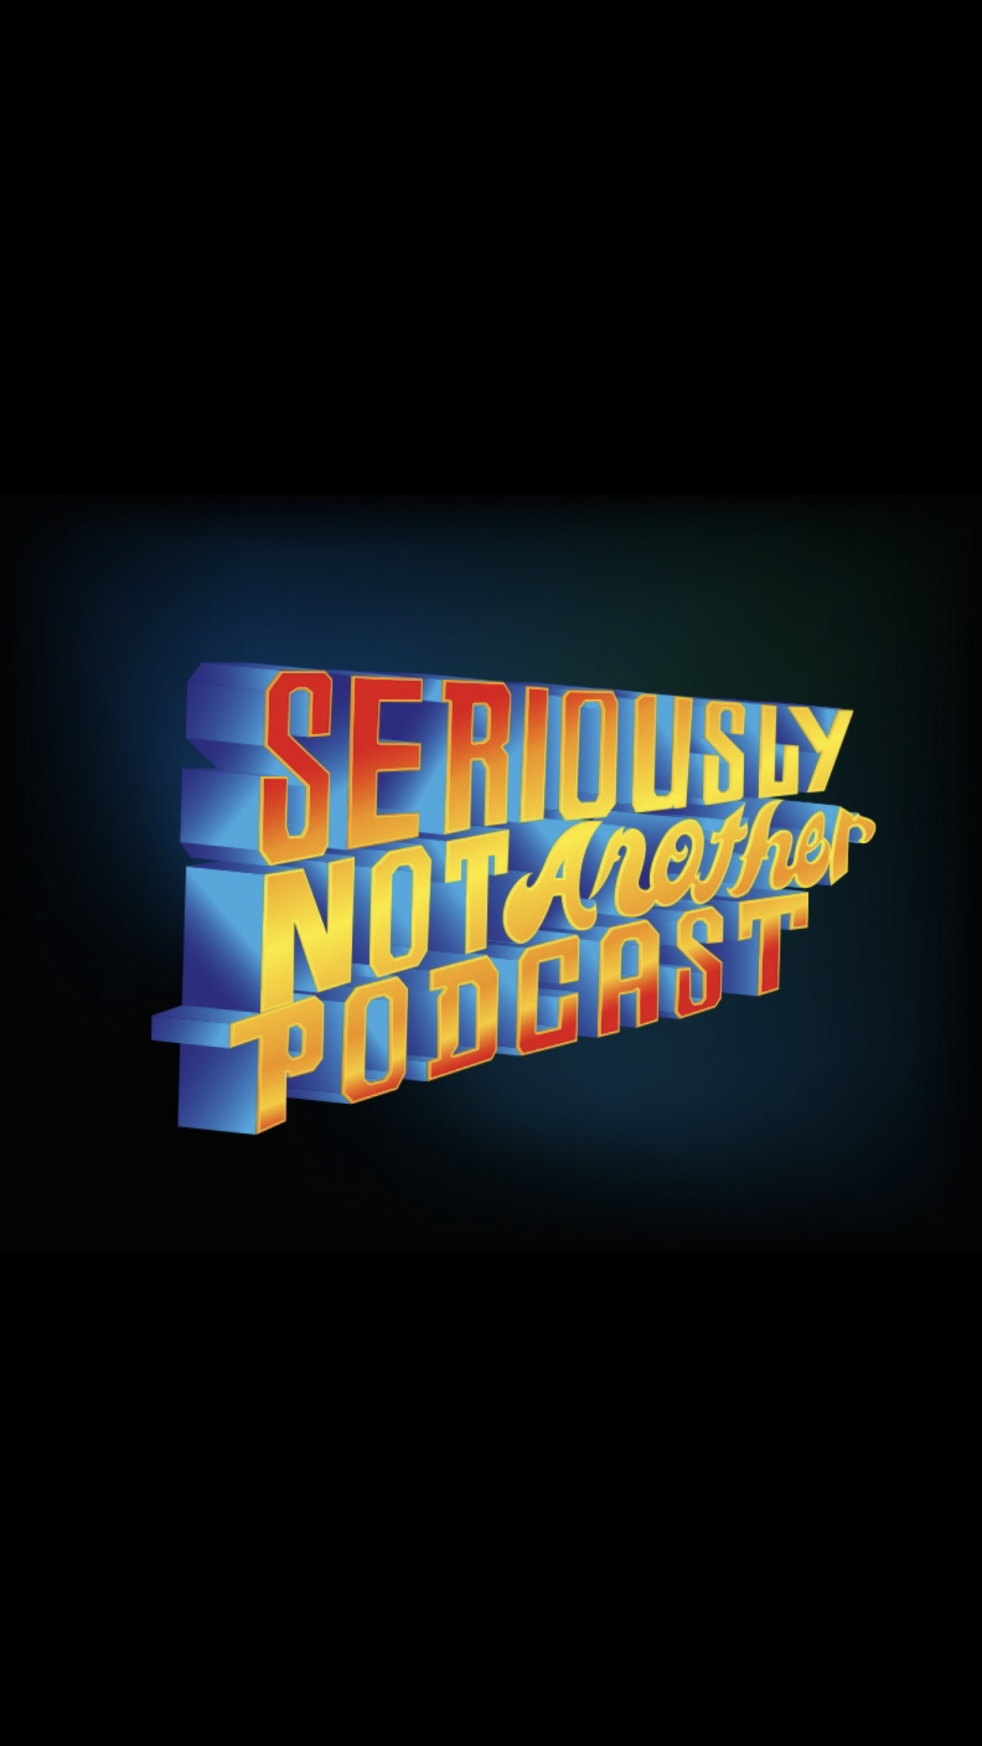 Seriously? Not Another Podcast - Cover Image